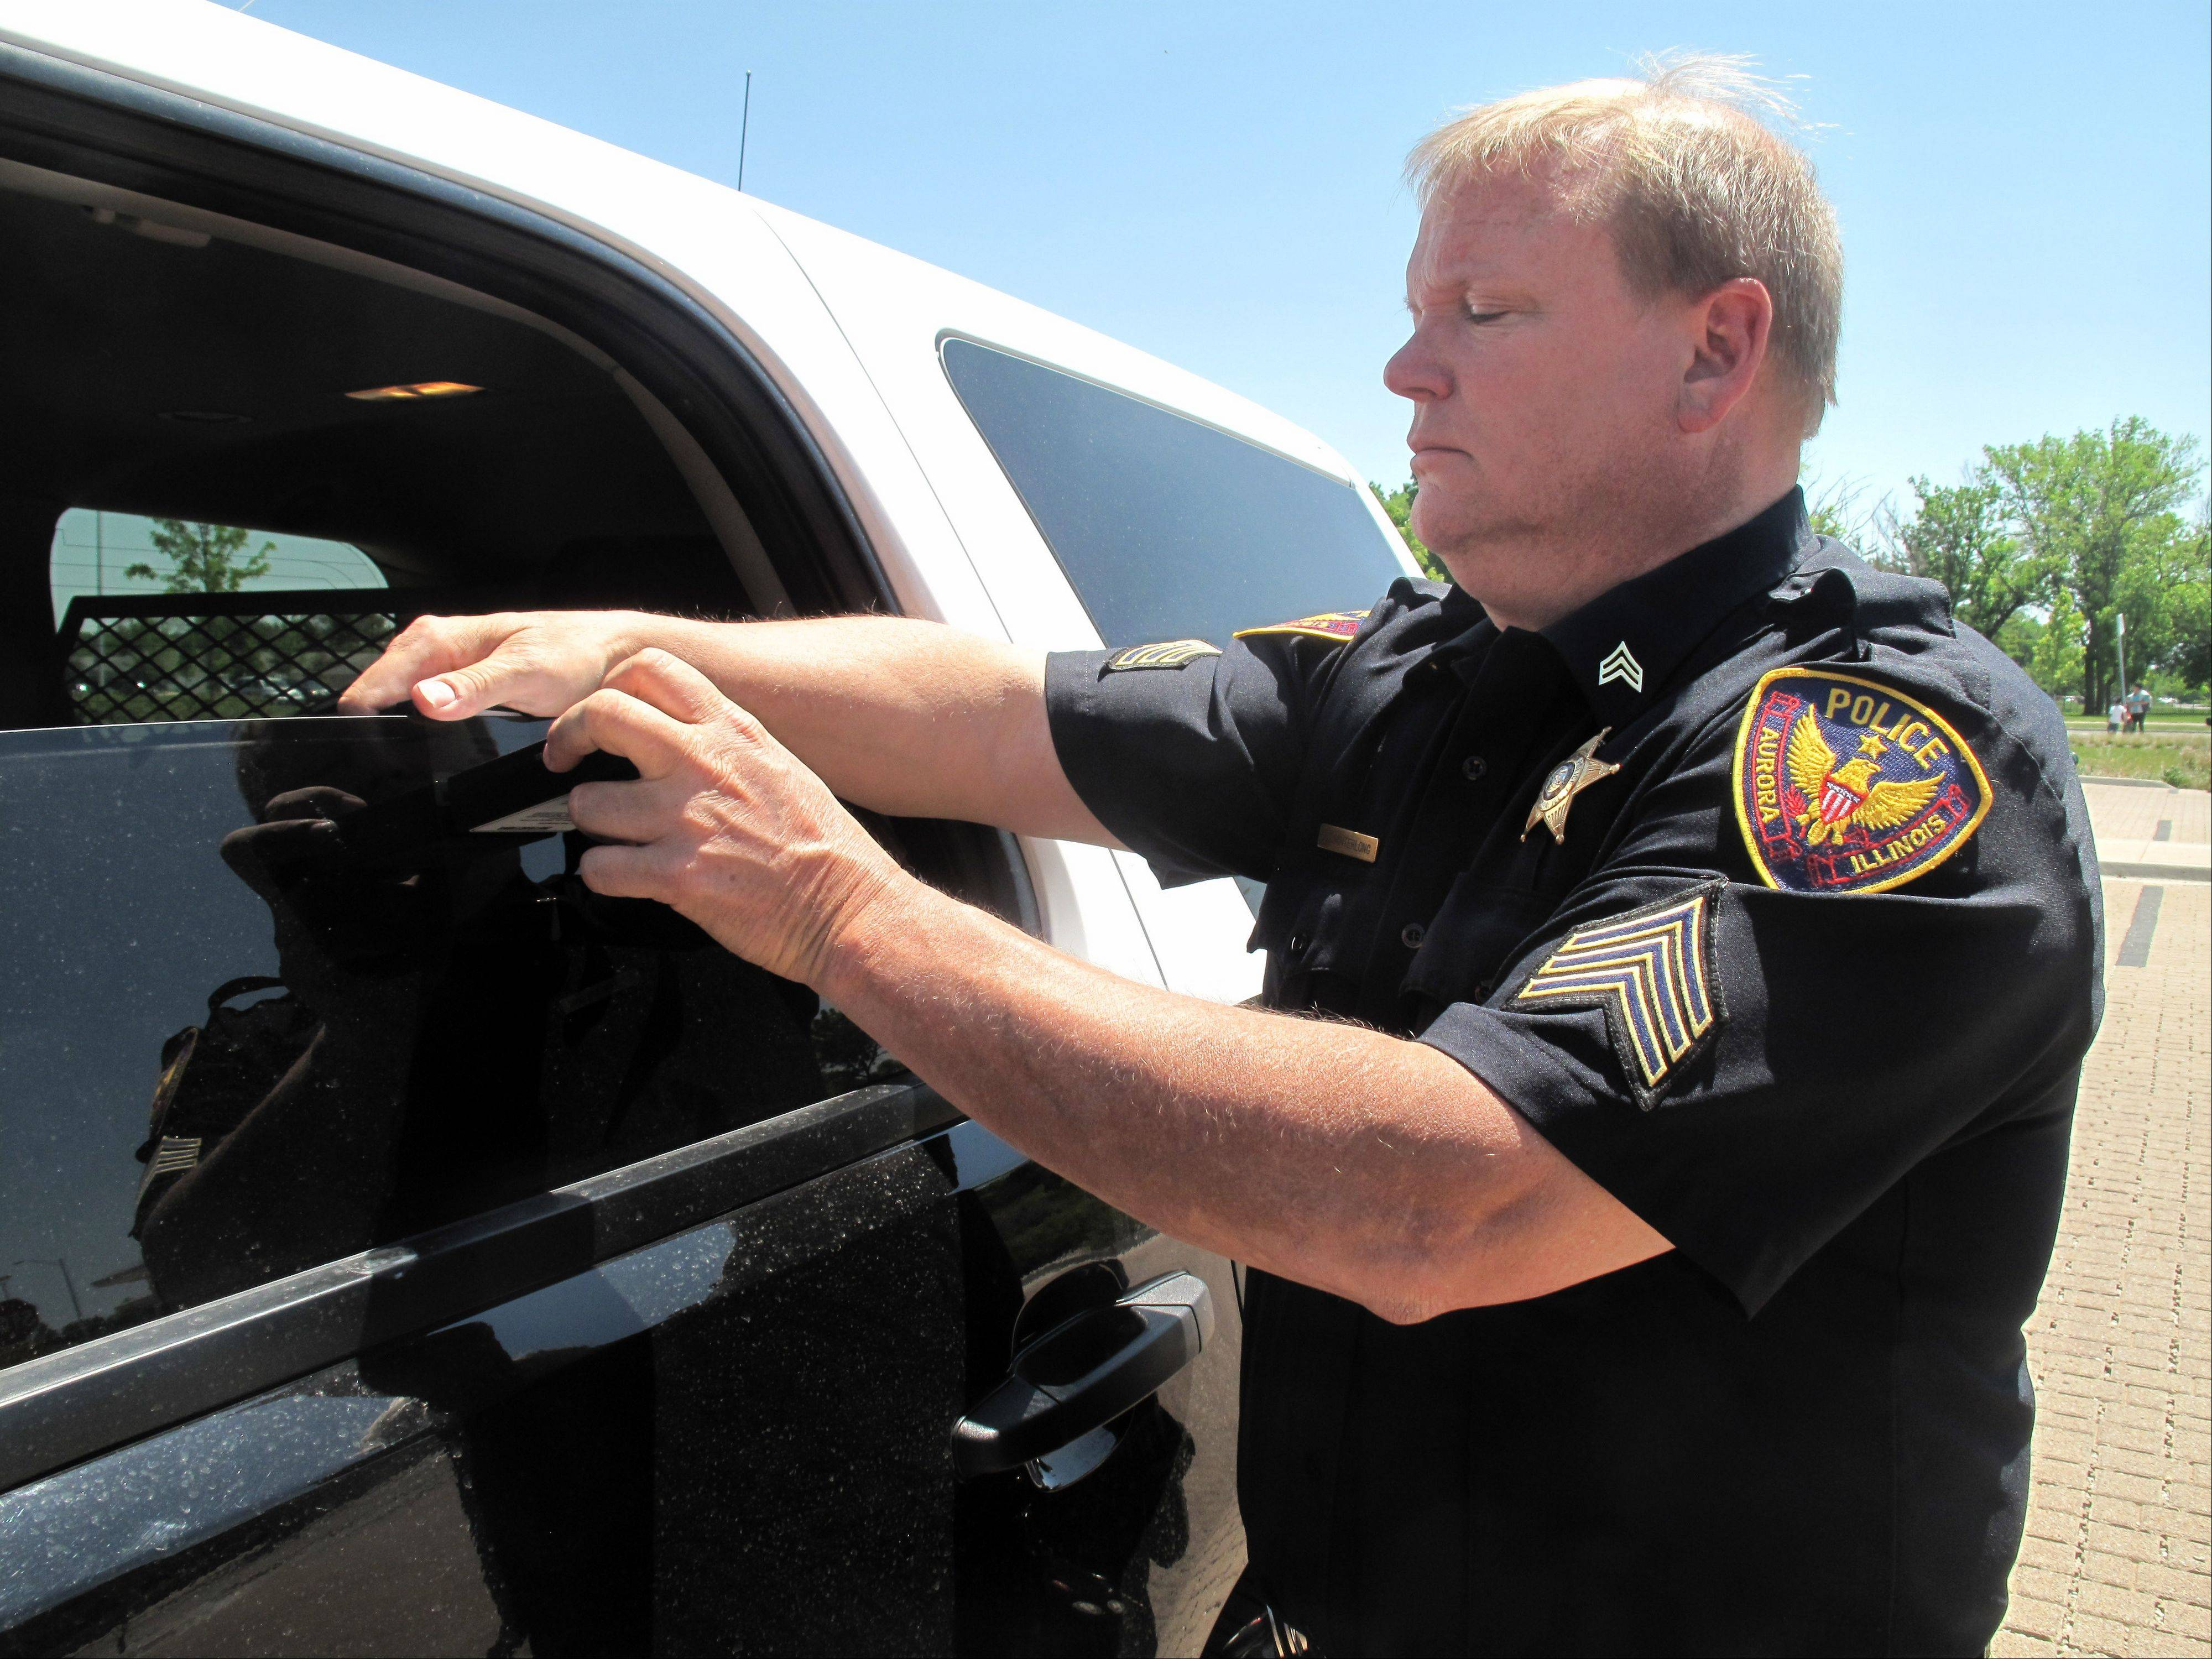 Sgt. Tom Hinterlong uses a light transmittance meter to determine how much light can shine through the front driver's side window of his squad car. Aurora police got their first light meter in April and have been using it to test the tint of car windows stopped during traffic details.